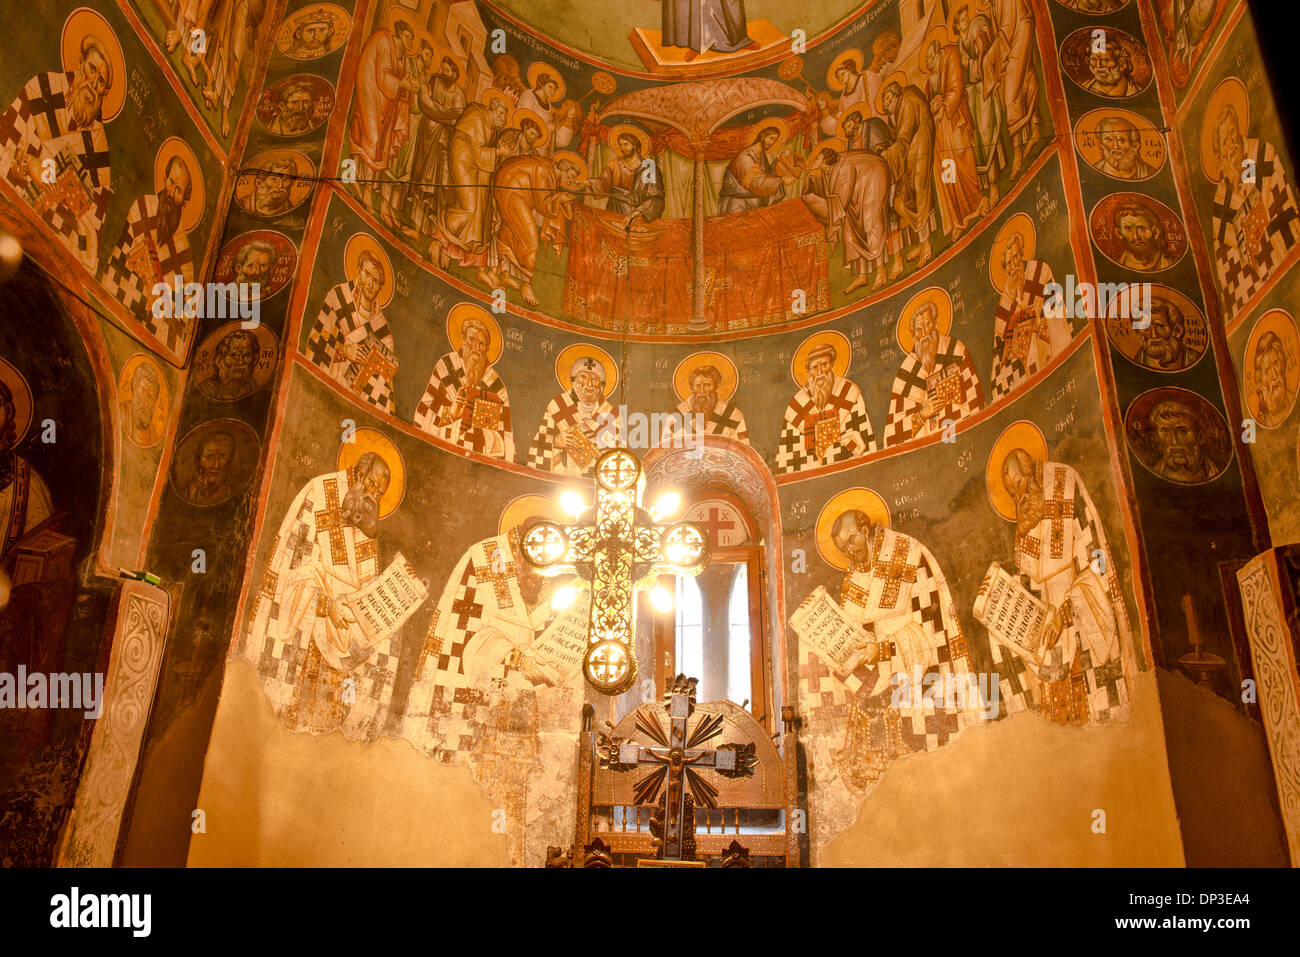 Frescoes sunlit cross Holy Mother of God Peribleptos Church Ohrid Macedonia Built in 1295  Examples of Byzantine frescoes world - Stock Image